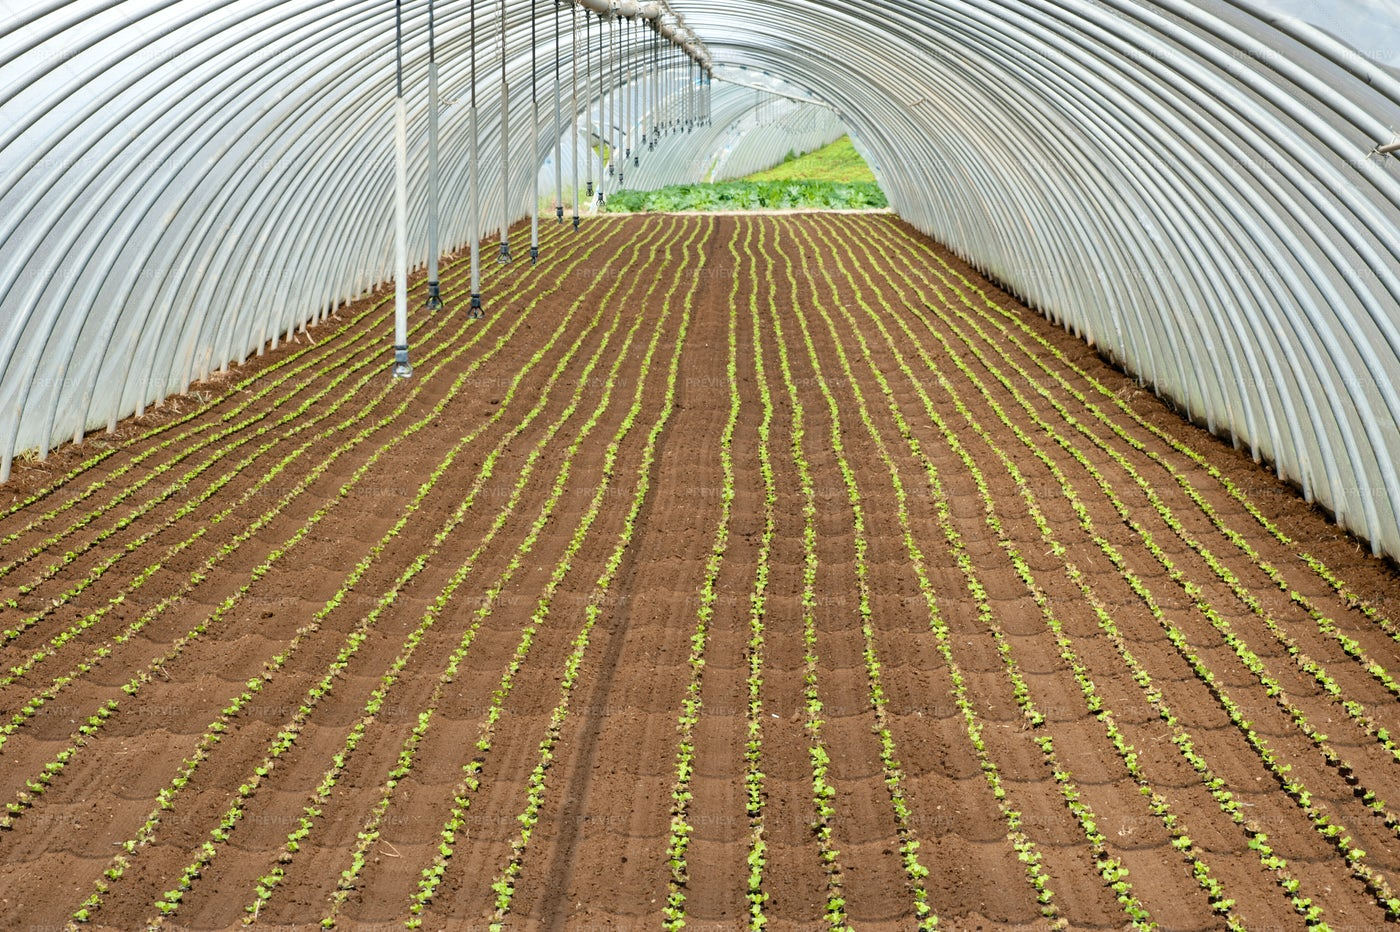 Seedlings Planted In A Tunnel: Stock Photos